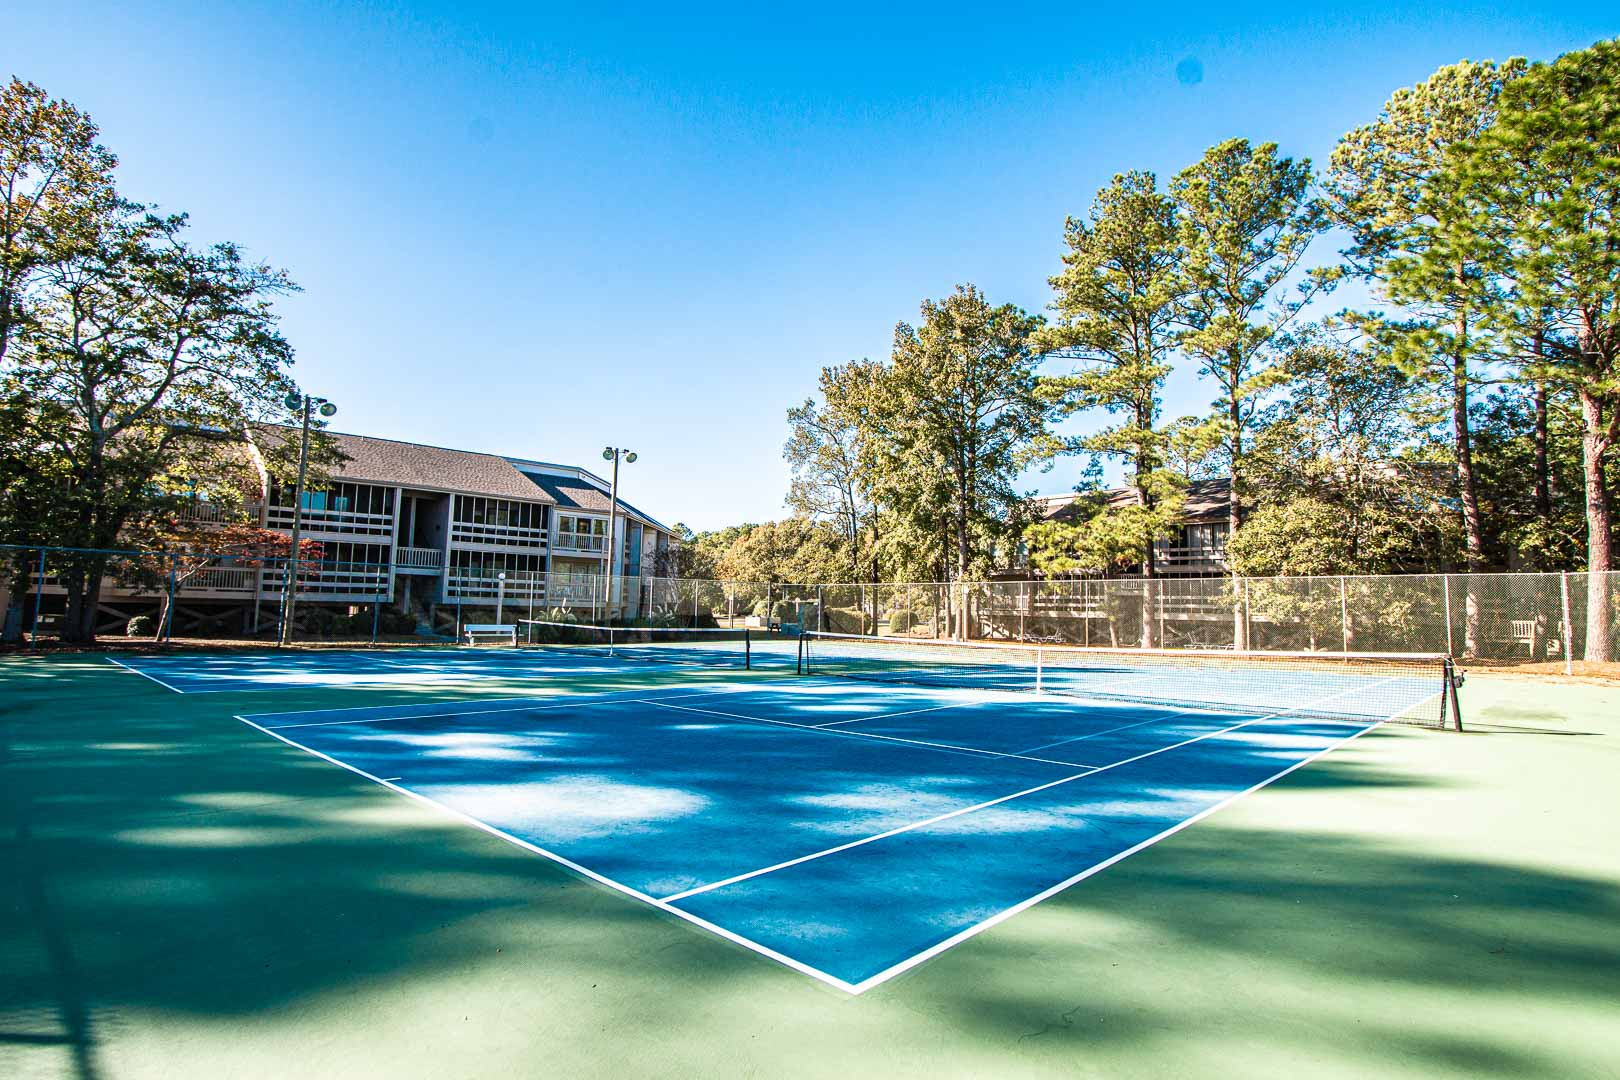 A spacious outdoor tennis court at VRI's Harbourside II in New Bern, North Carolina.